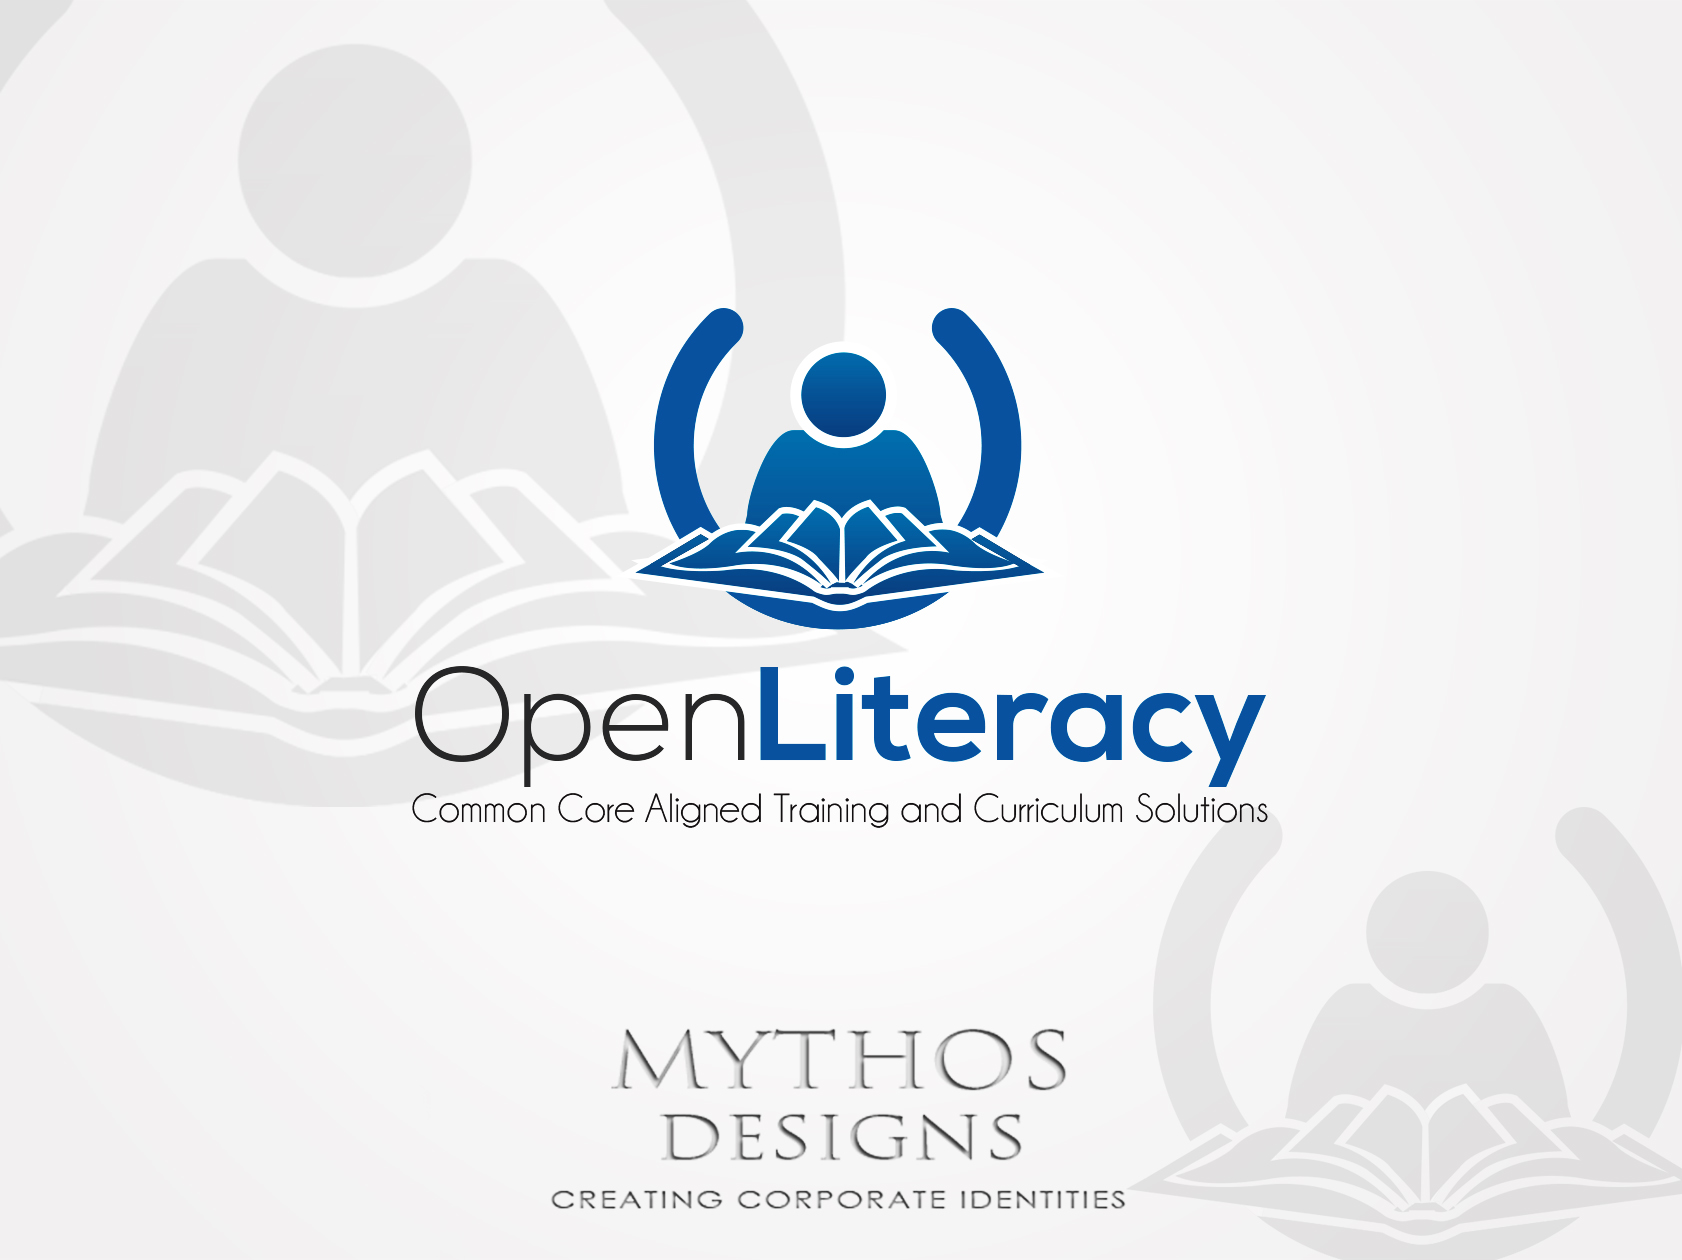 Logo Design by Mythos Designs - Entry No. 108 in the Logo Design Contest Inspiring Logo Design for OpenLiteracy.